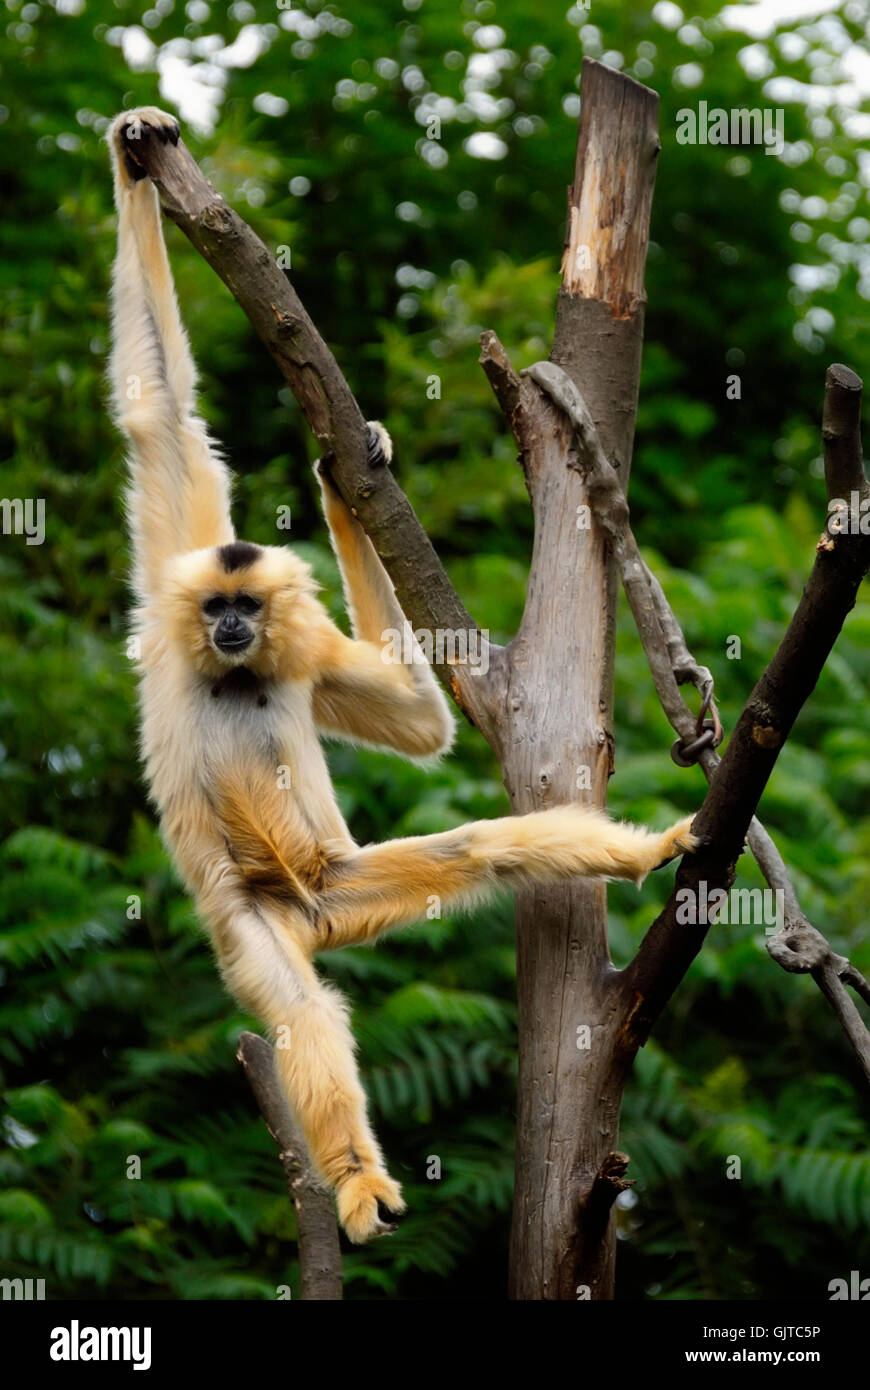 animal monkey hang - Stock Image